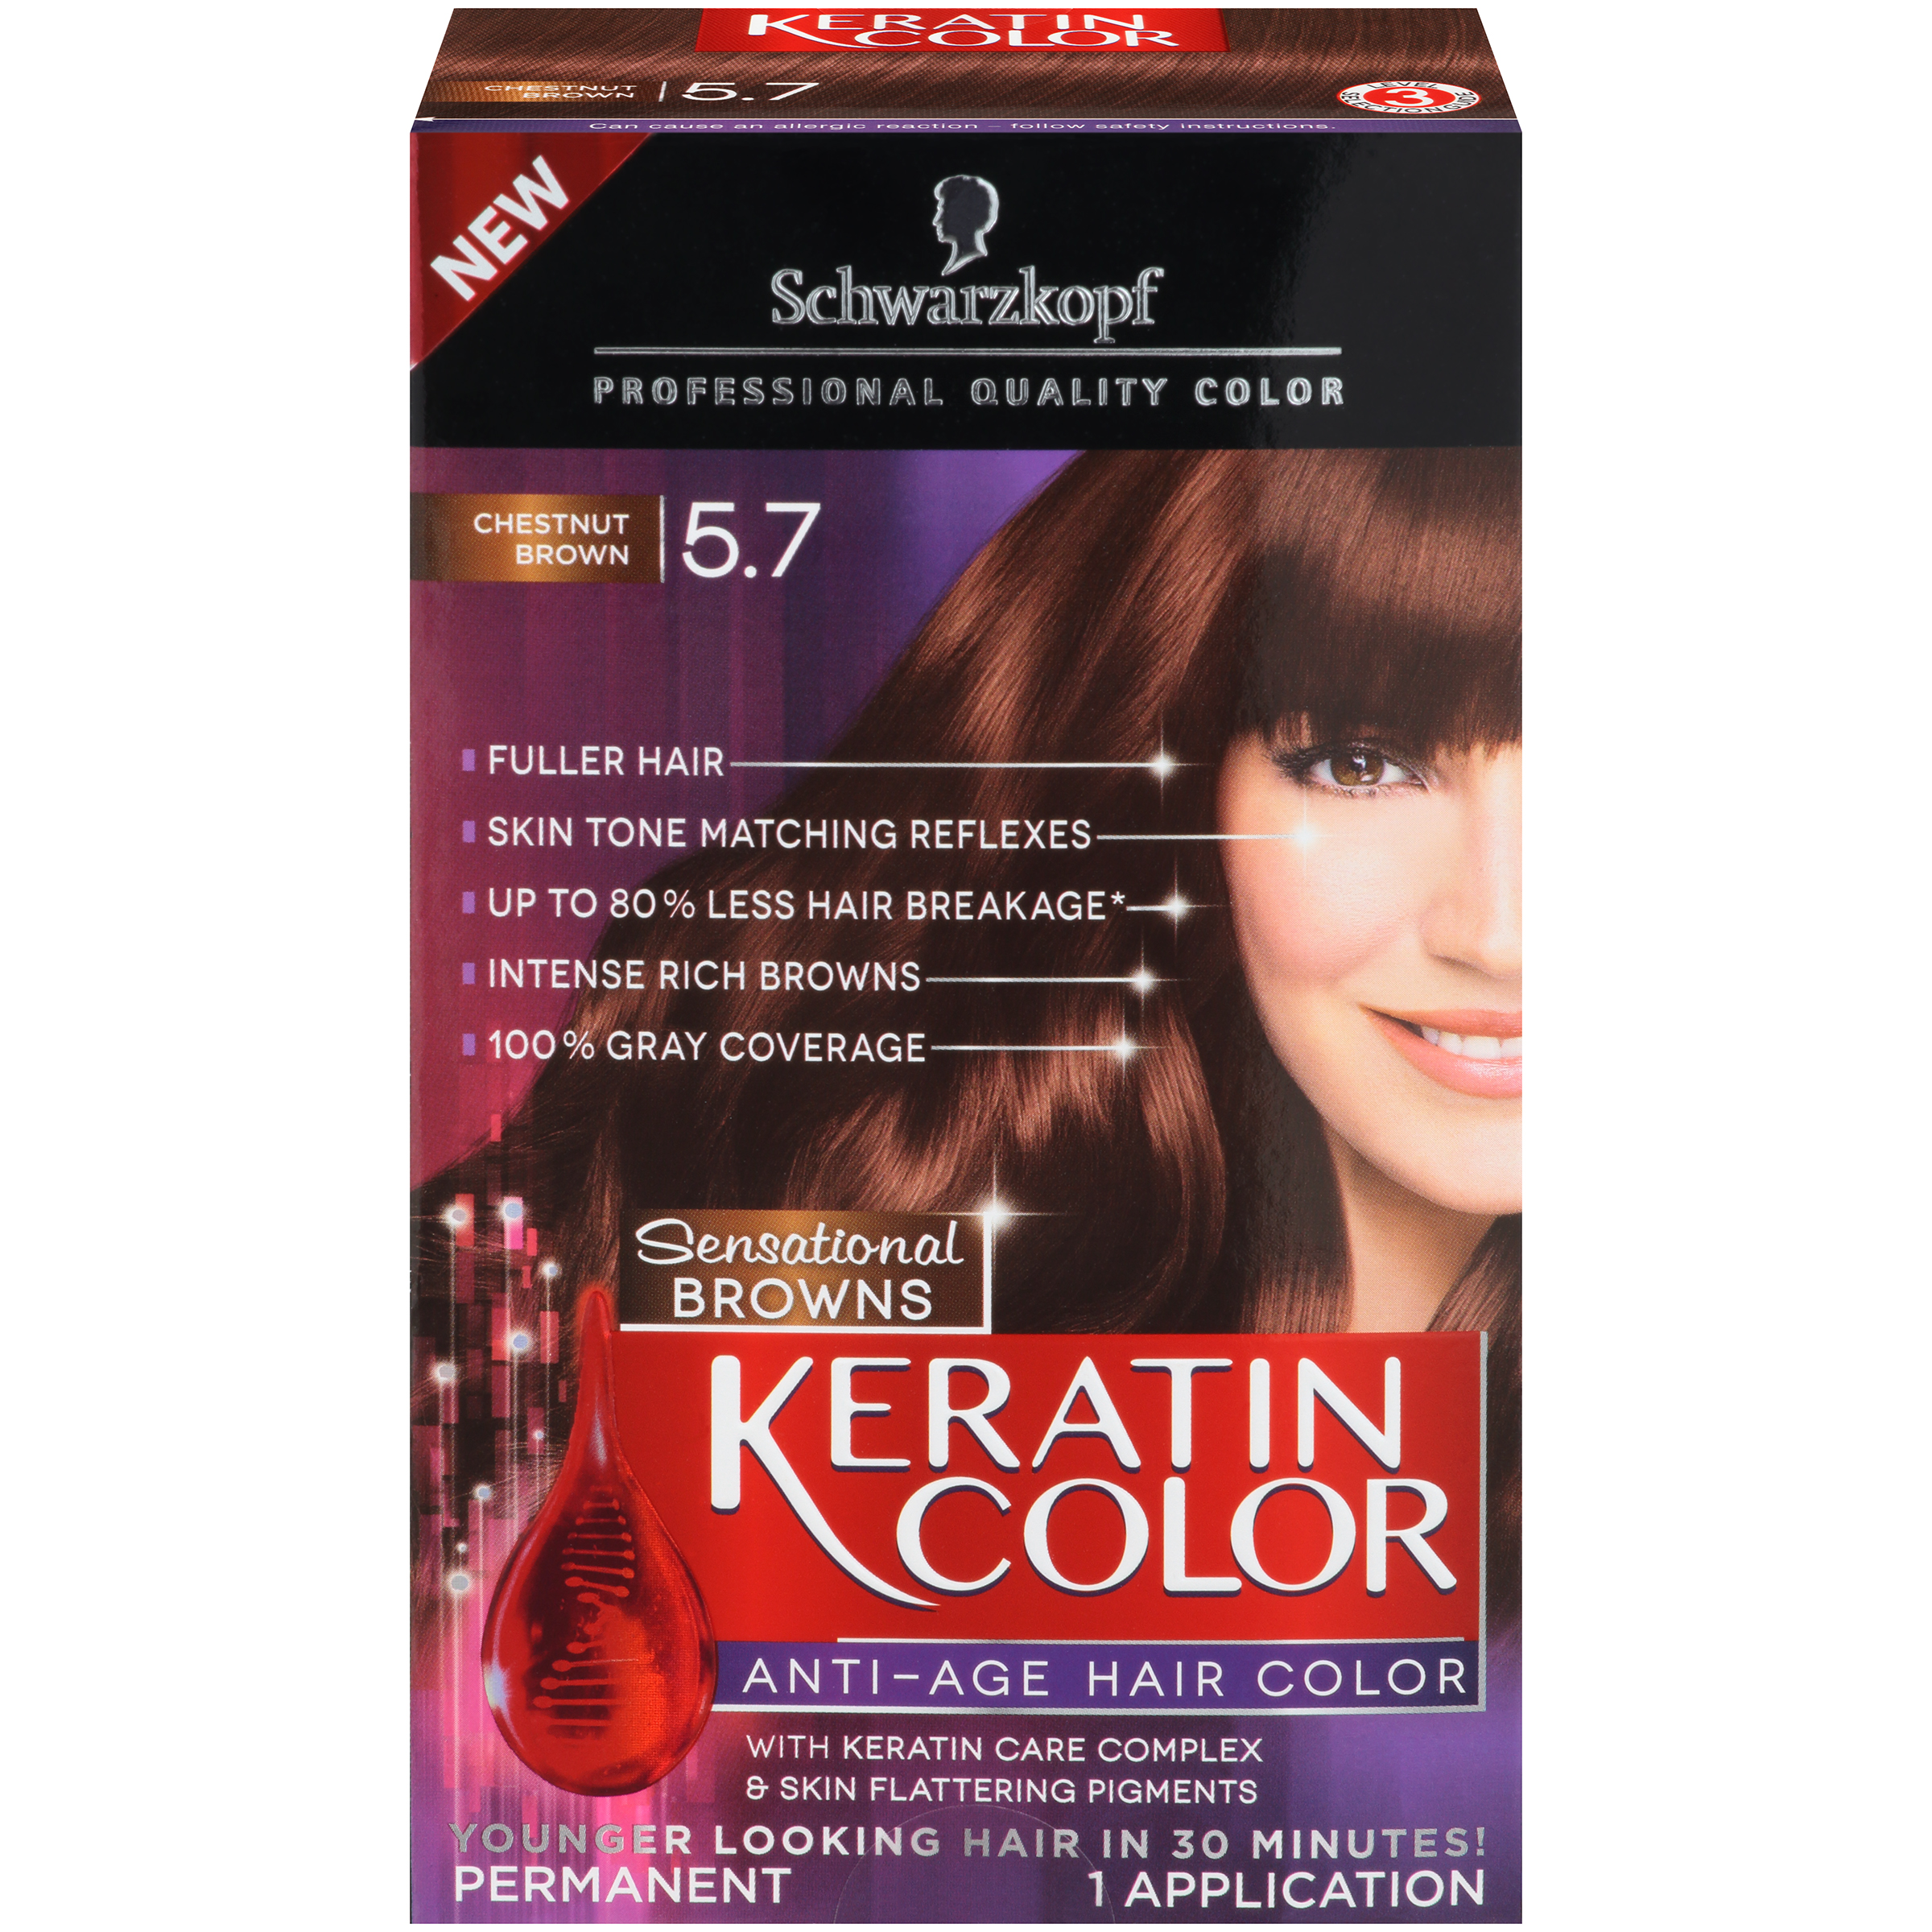 Schwarzkopf keratin color anti age hair color cream 57 chestnut schwarzkopf keratin color anti age hair color cream 57 chestnut brown walmart nvjuhfo Image collections